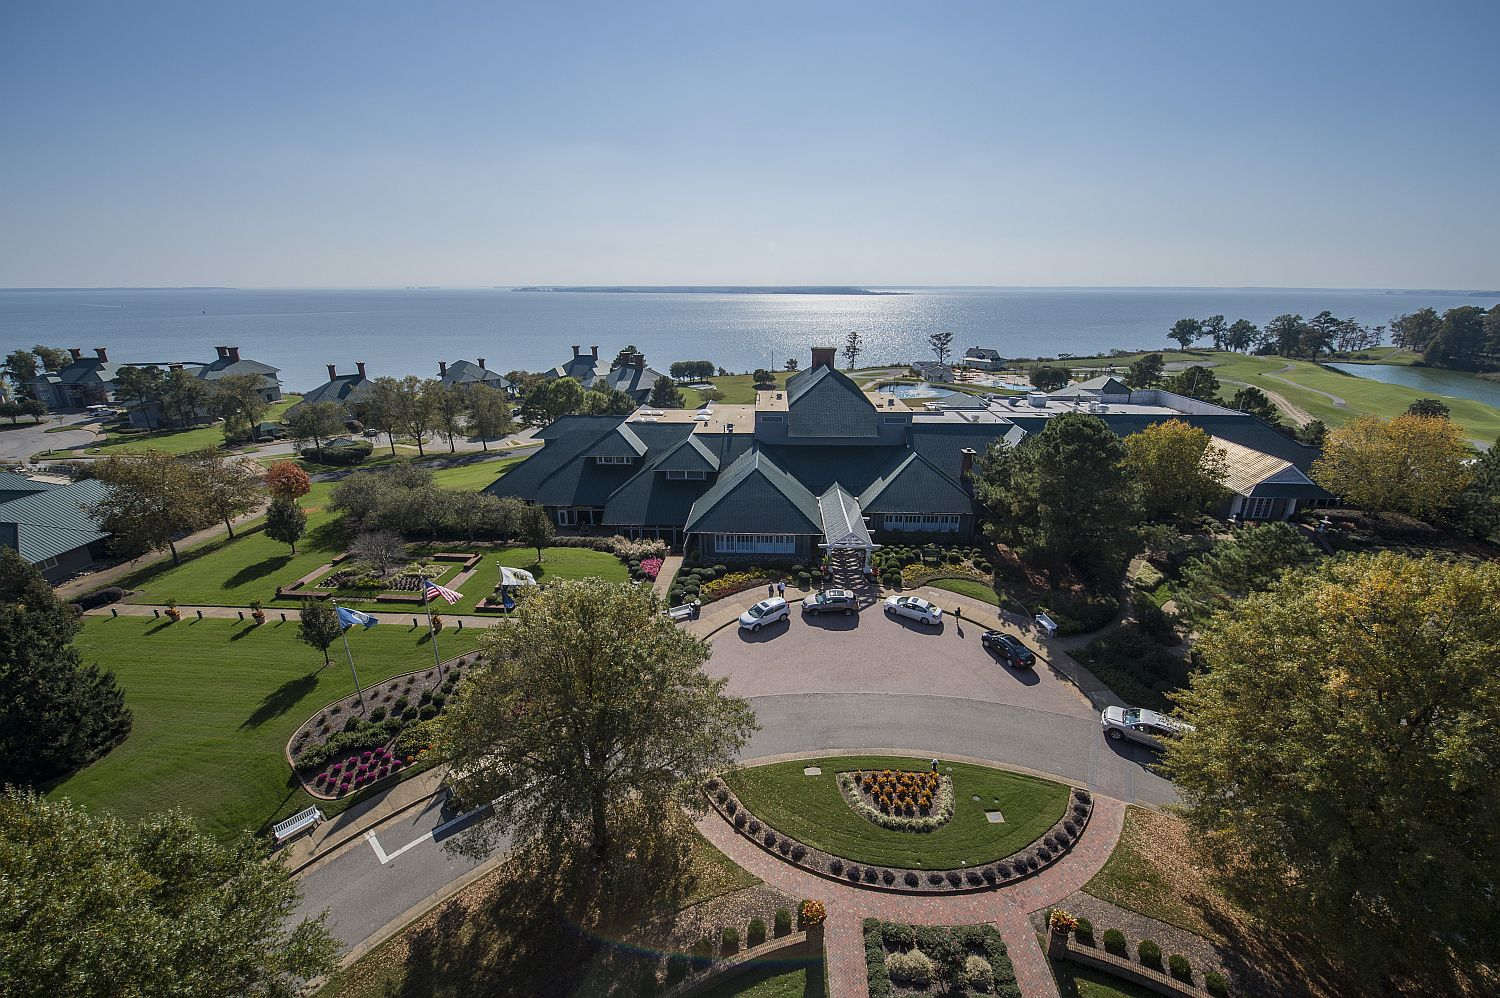 Kingsmill Resort in Williamsburg, Virginia